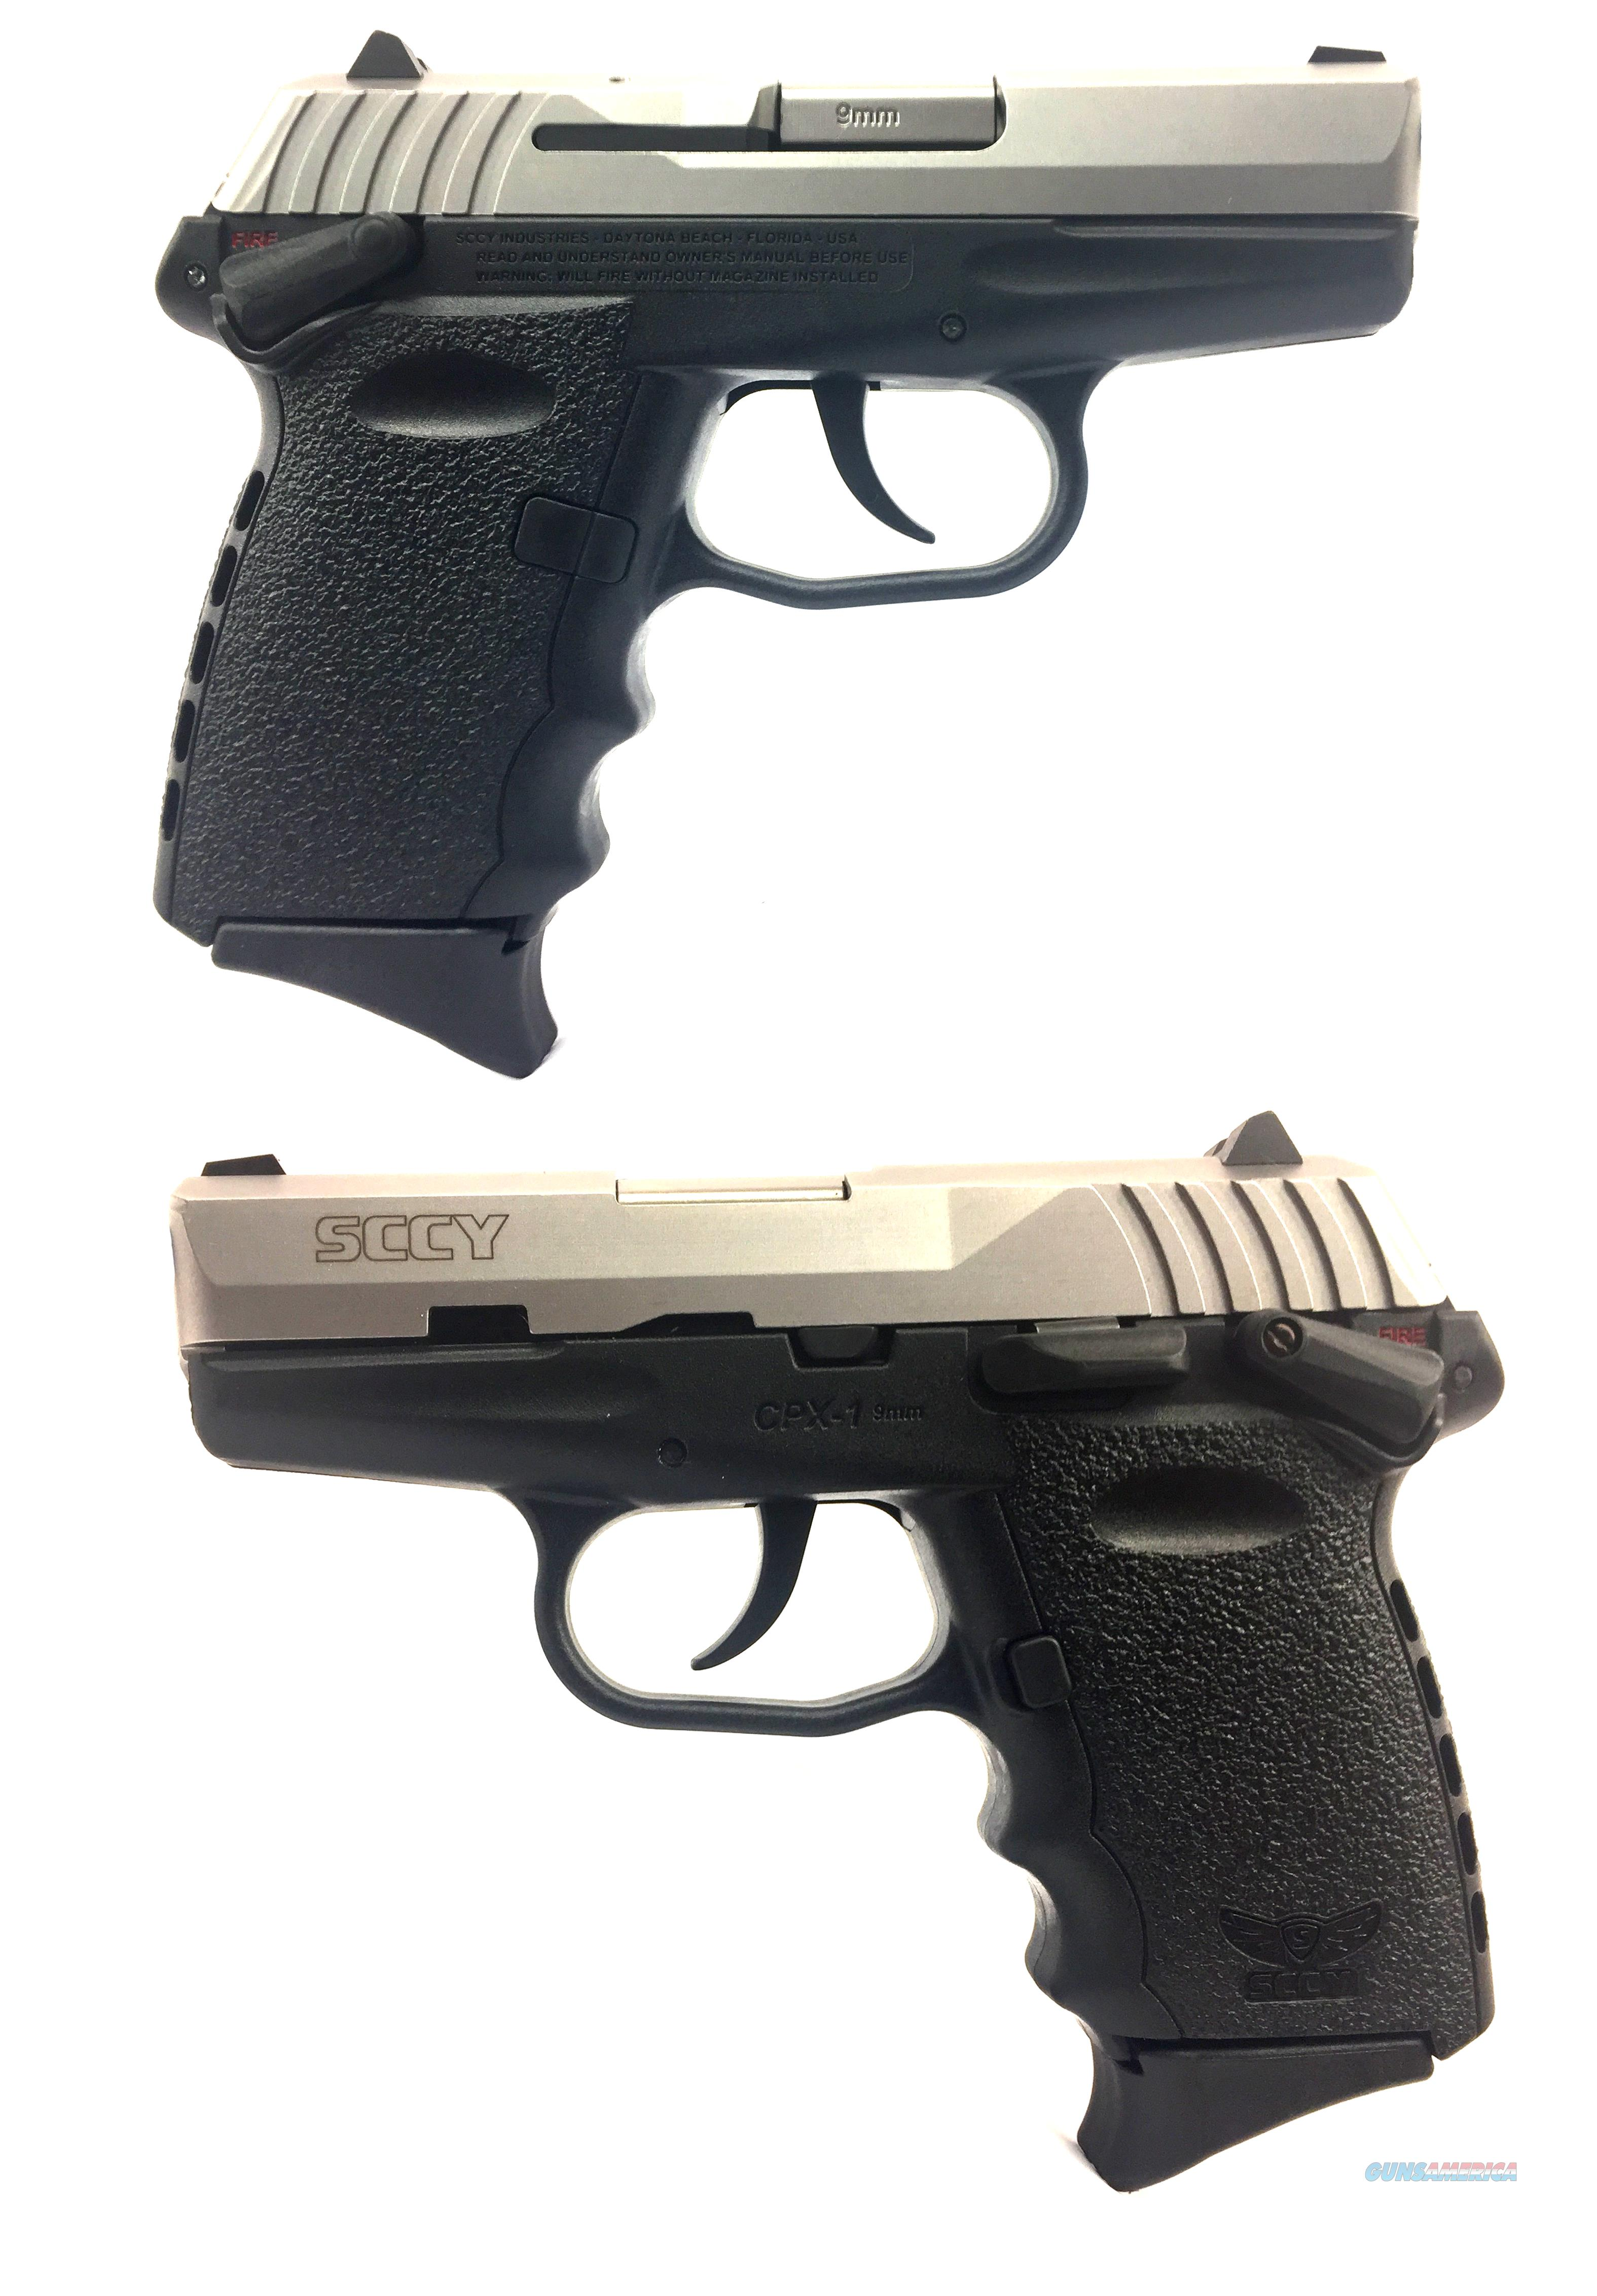 SCCY CPX-1  9mm Pistol  Guns > Pistols > SCCY Pistols > CPX1